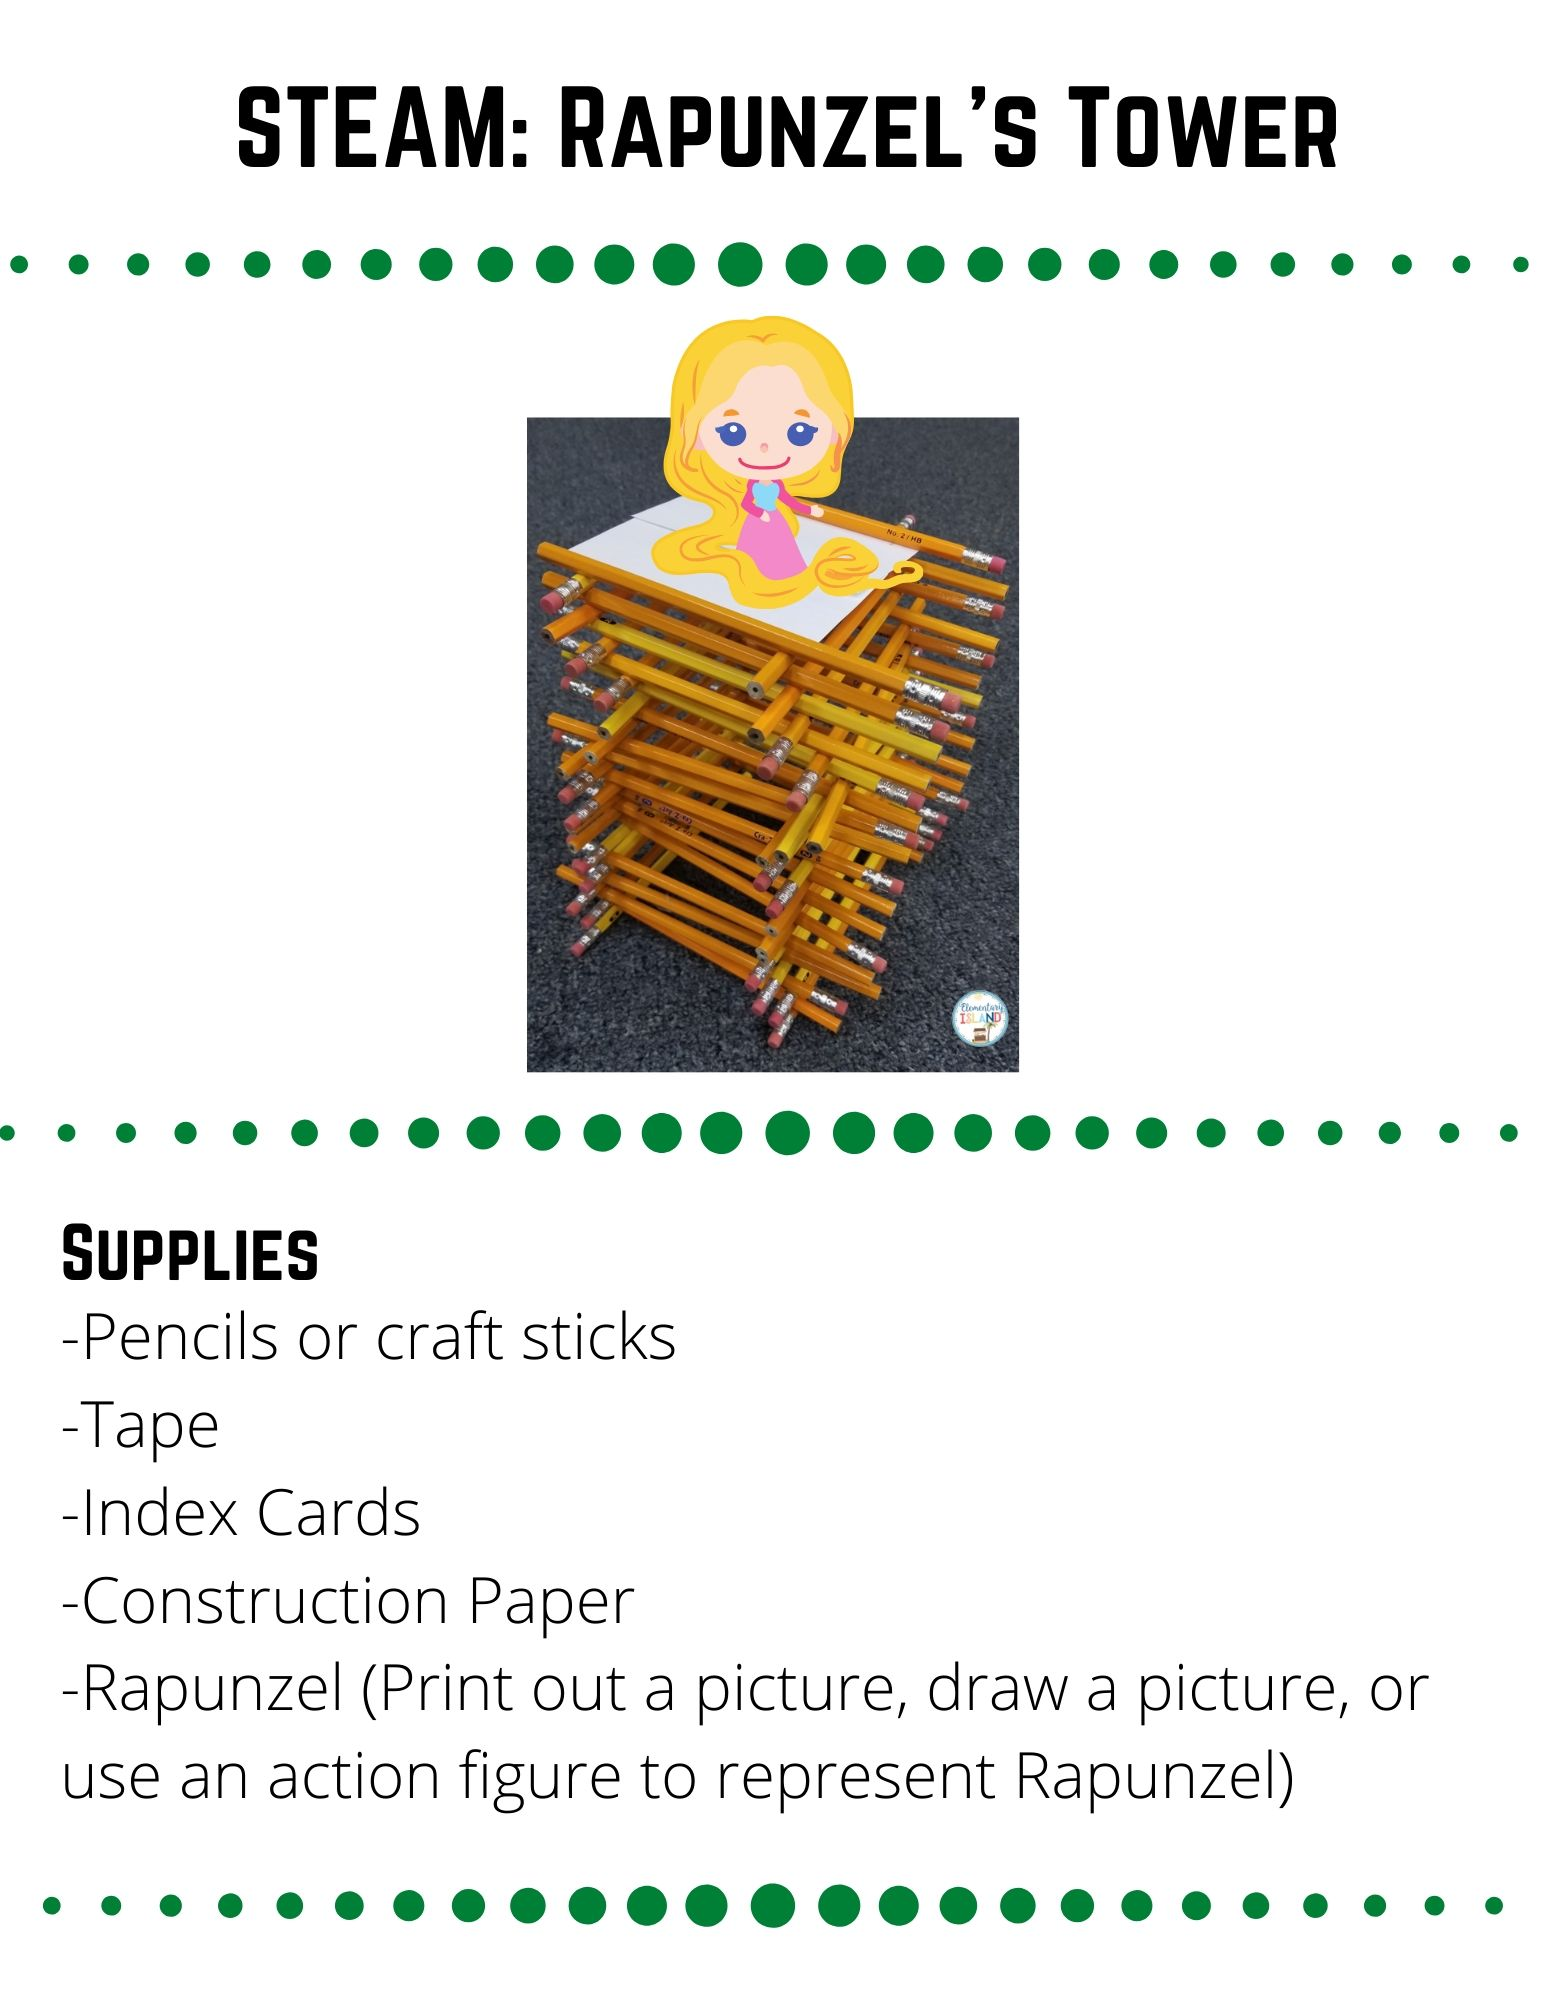 STEAM: Rapunzel's Tower.  -Pencils or craft sticks -Tape -Index Cards -Construction Paper -Rapunzel (Print out a picture, draw a picture, or use an action figure to represent Rapunzel).  Construct the tallest tower you can out of the materials provided.  Use the internet to look at examples of towers.  What do you notice about them? Think about the tower you are going to build.  Make a sketch of it before you begin.  When you are ready, build your tower!  If it doesn't work the first time try again!    Place Rapunzel on top of the tower when you are done.  Make sure your tower can hold her.  If you really want a challenge, tape some coins to Rapunzel for added weight.